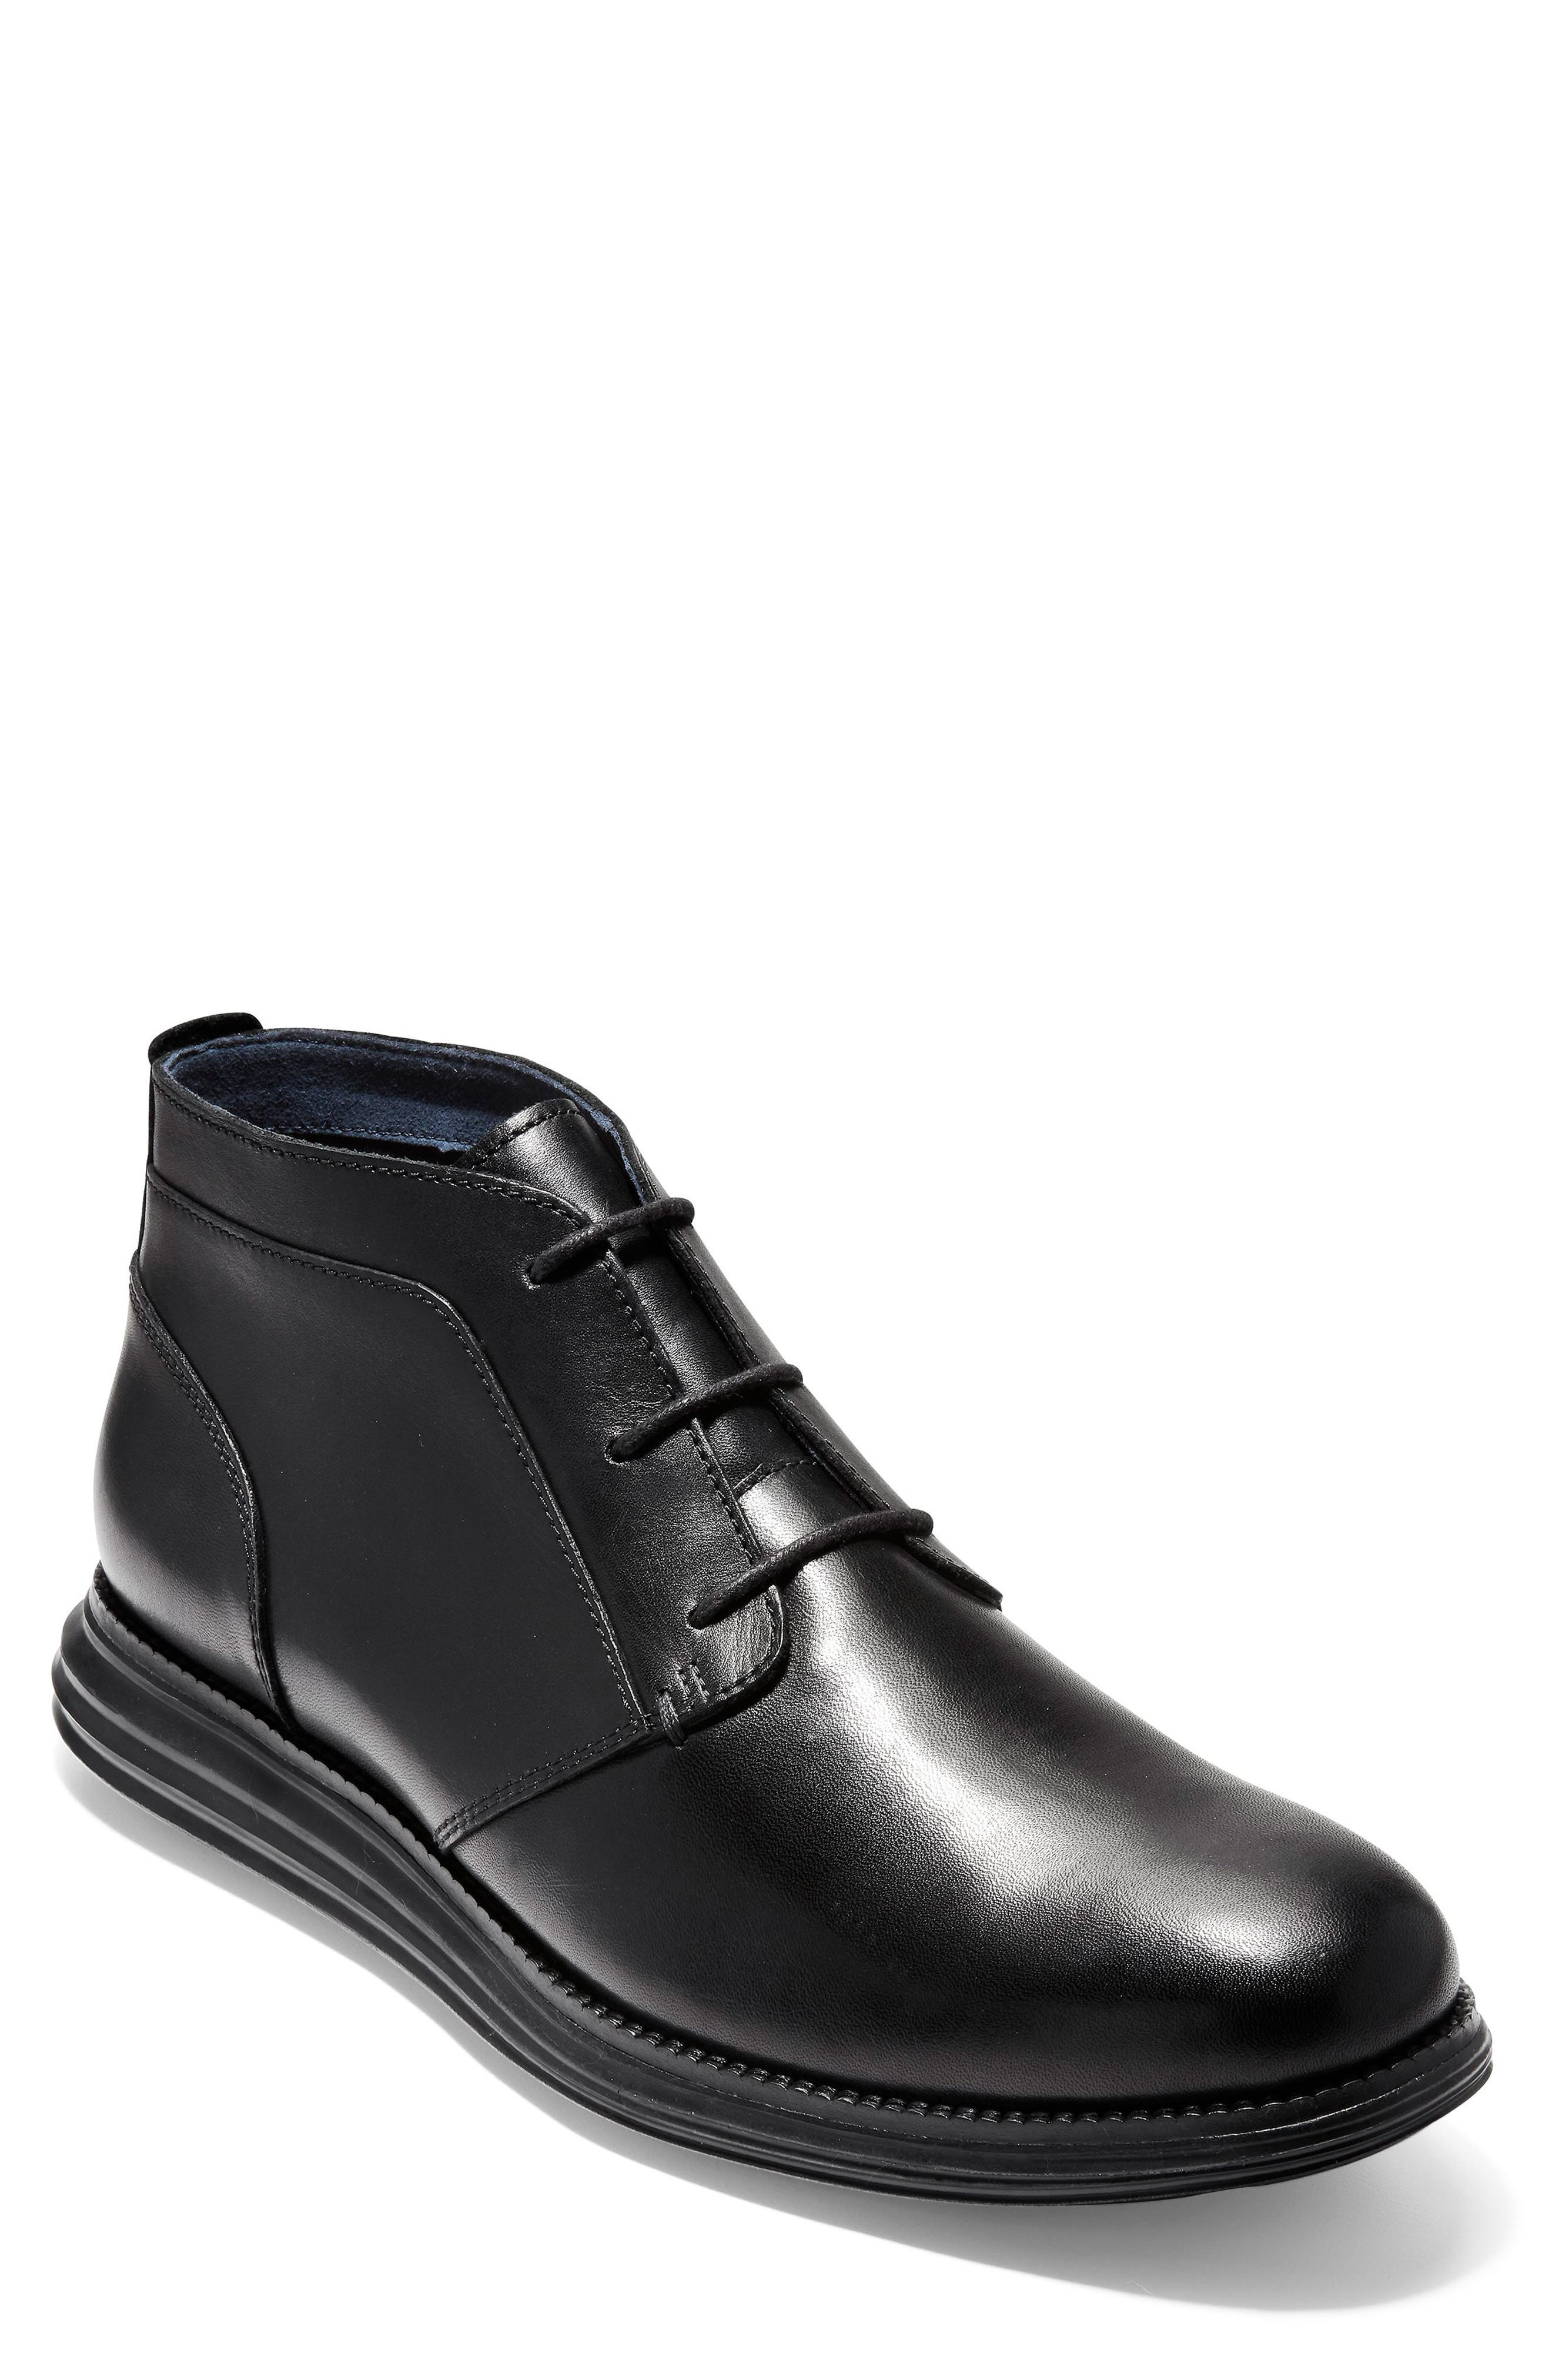 Cole Haan Original Grand Chukka Boot, Black